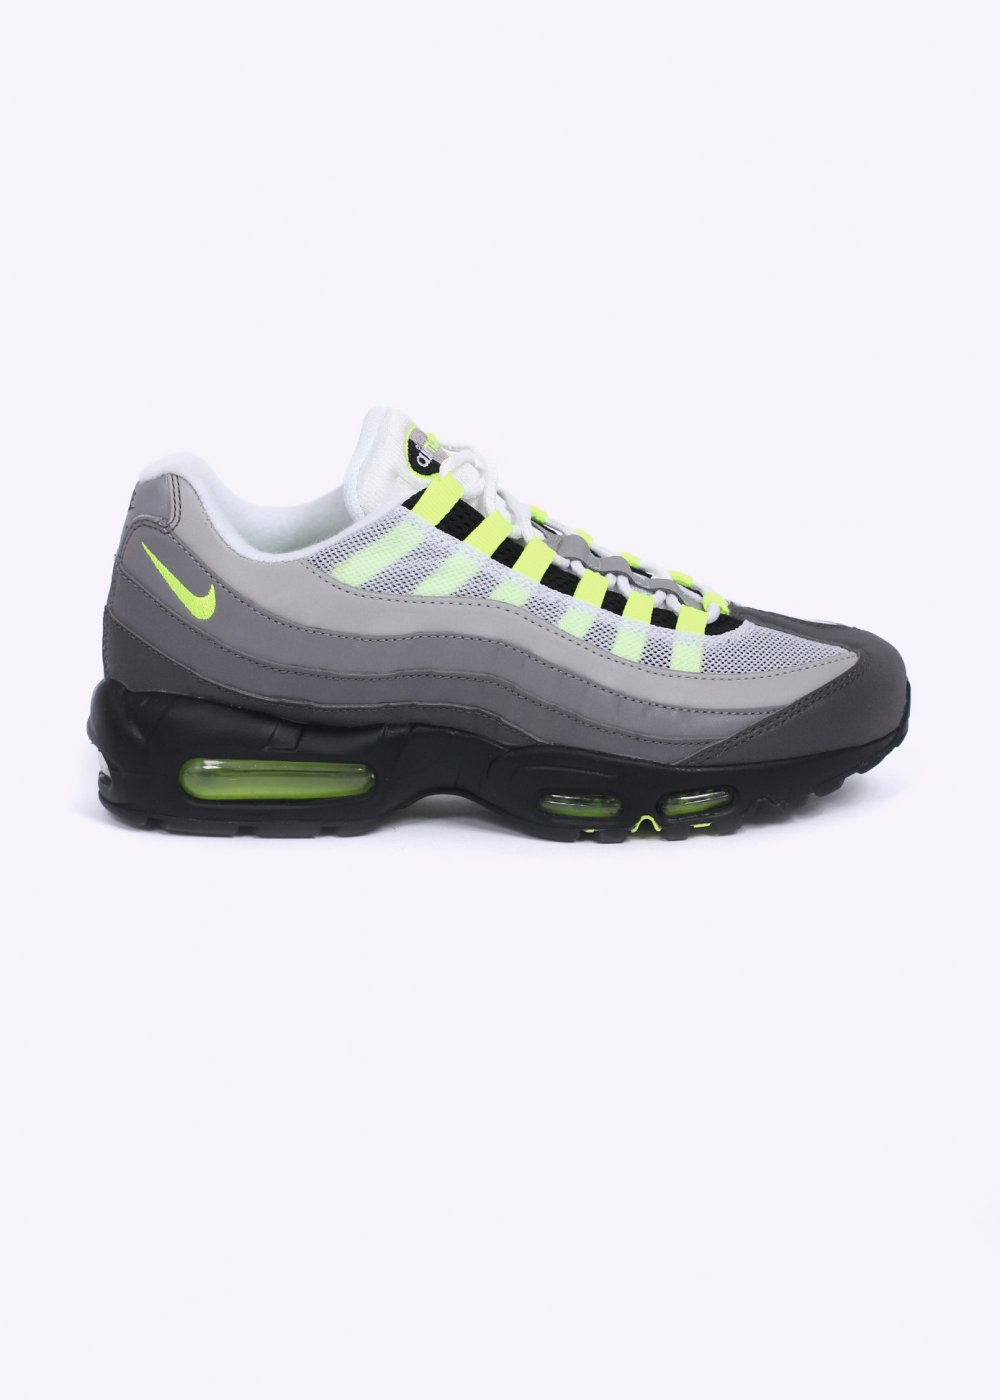 brand new c649d b9cd8 Nike Footwear Air Max 95 OG Premium Trainers - 3M Reflective